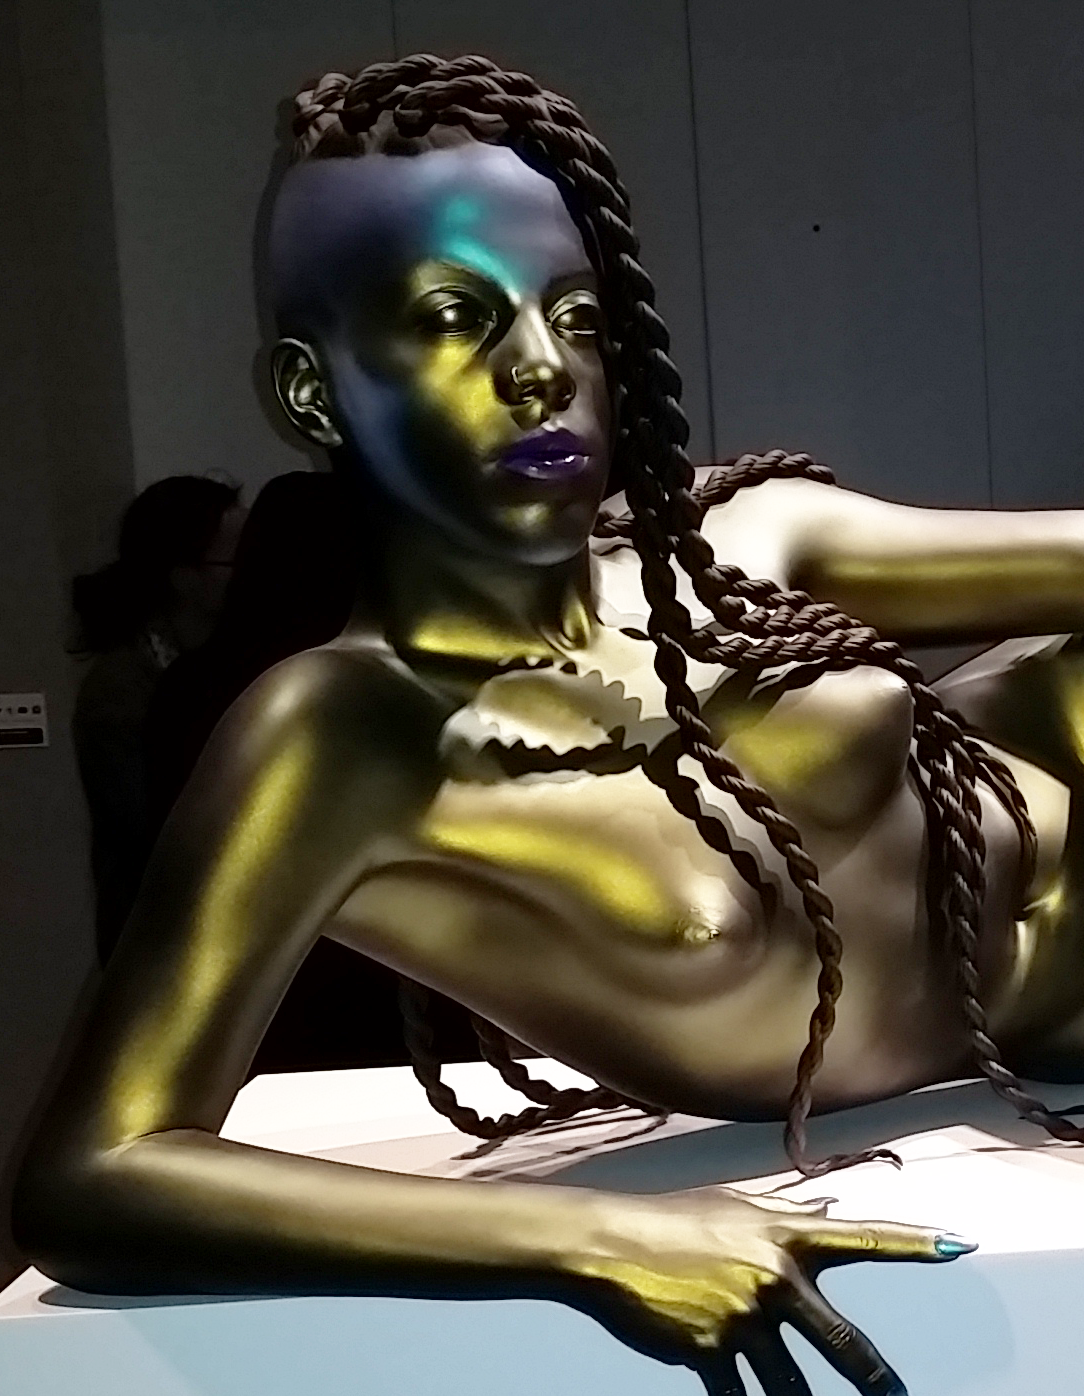 Female DJ Juliana Huxtable Sculpture by Frank Benson